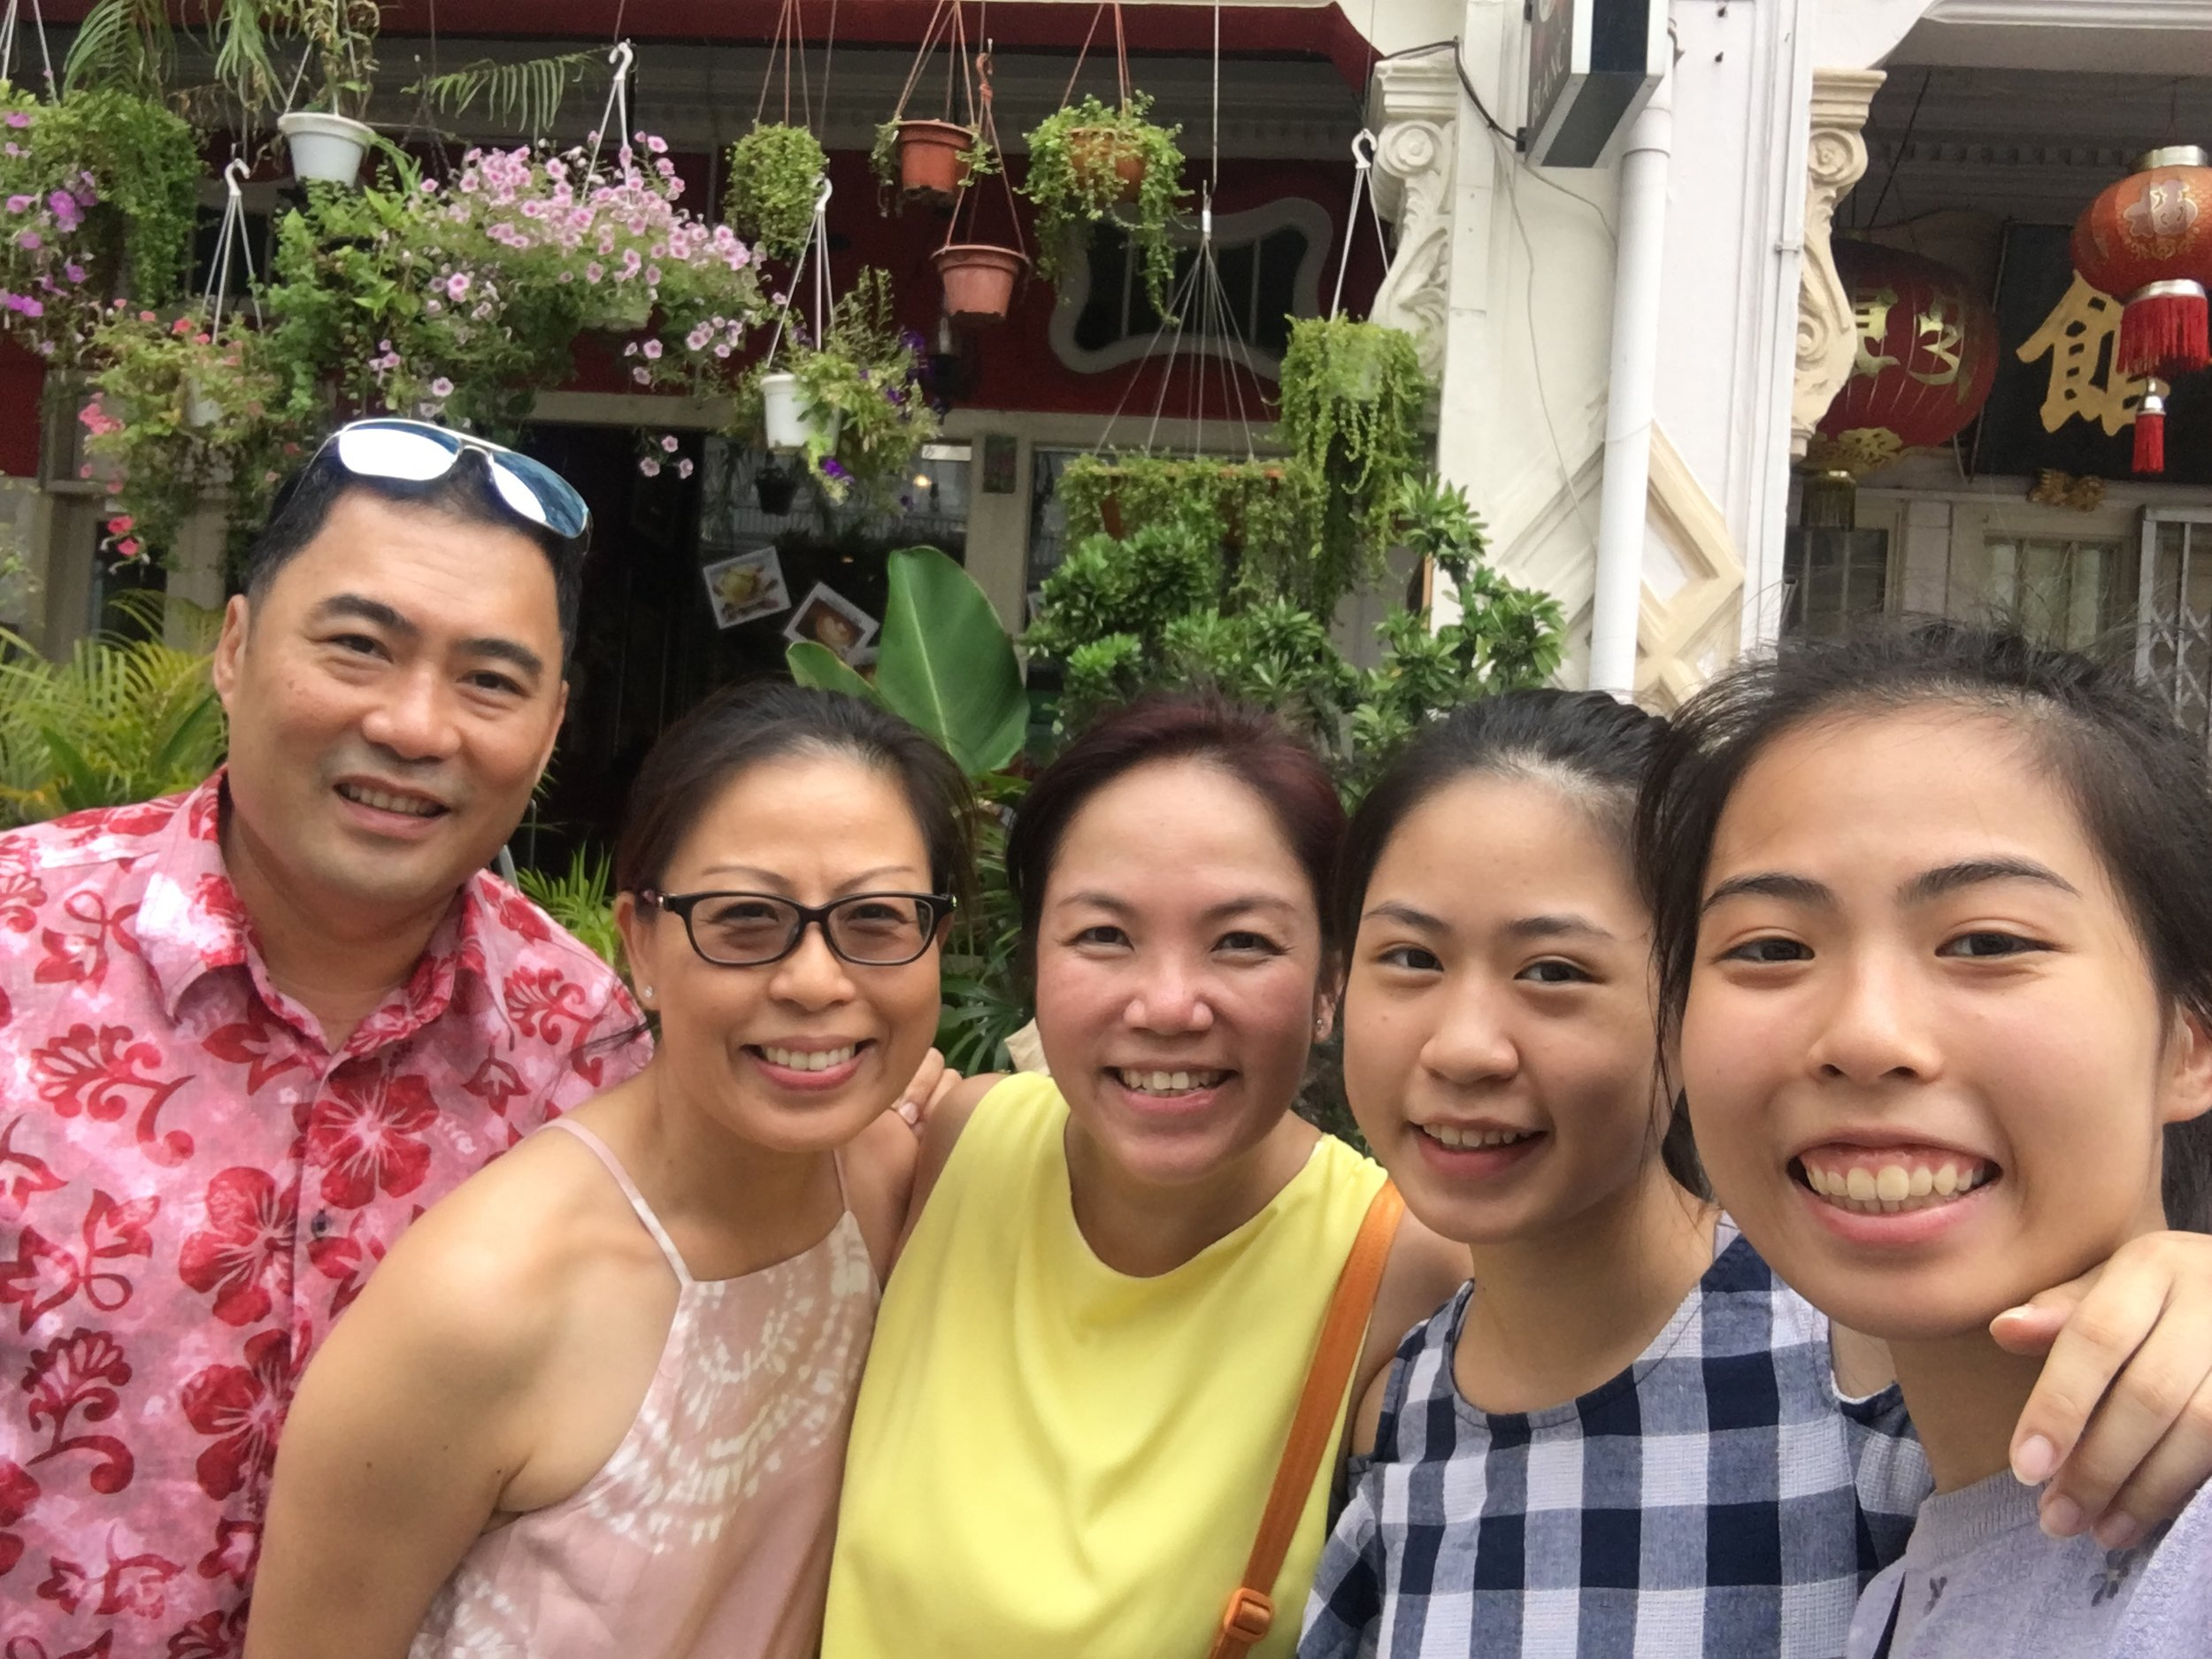 Growing Up In Keong Saik Tour Goh Famly.JPG